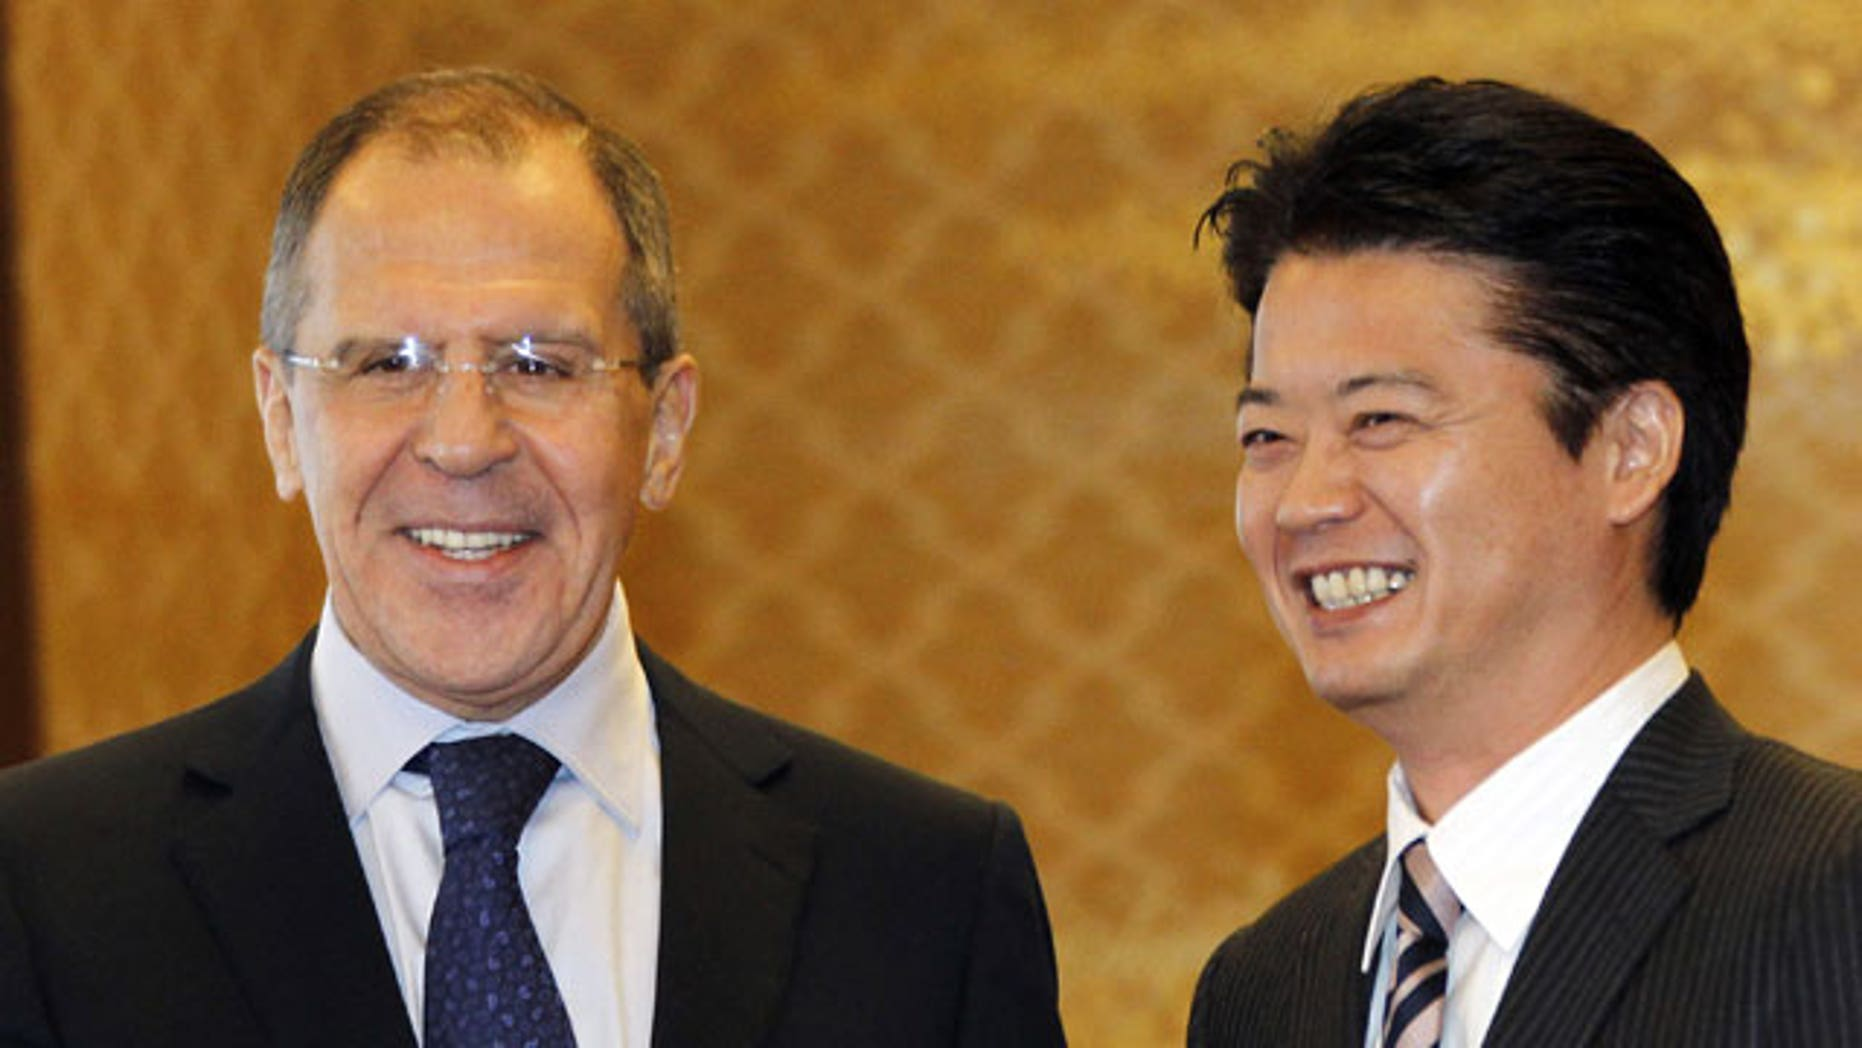 January 28, 2012: Russian Foreign Minister Sergey Lavrov, left, shakes hands with his counterpart Koichiro Gemba prior to their meeting in Tokyo.